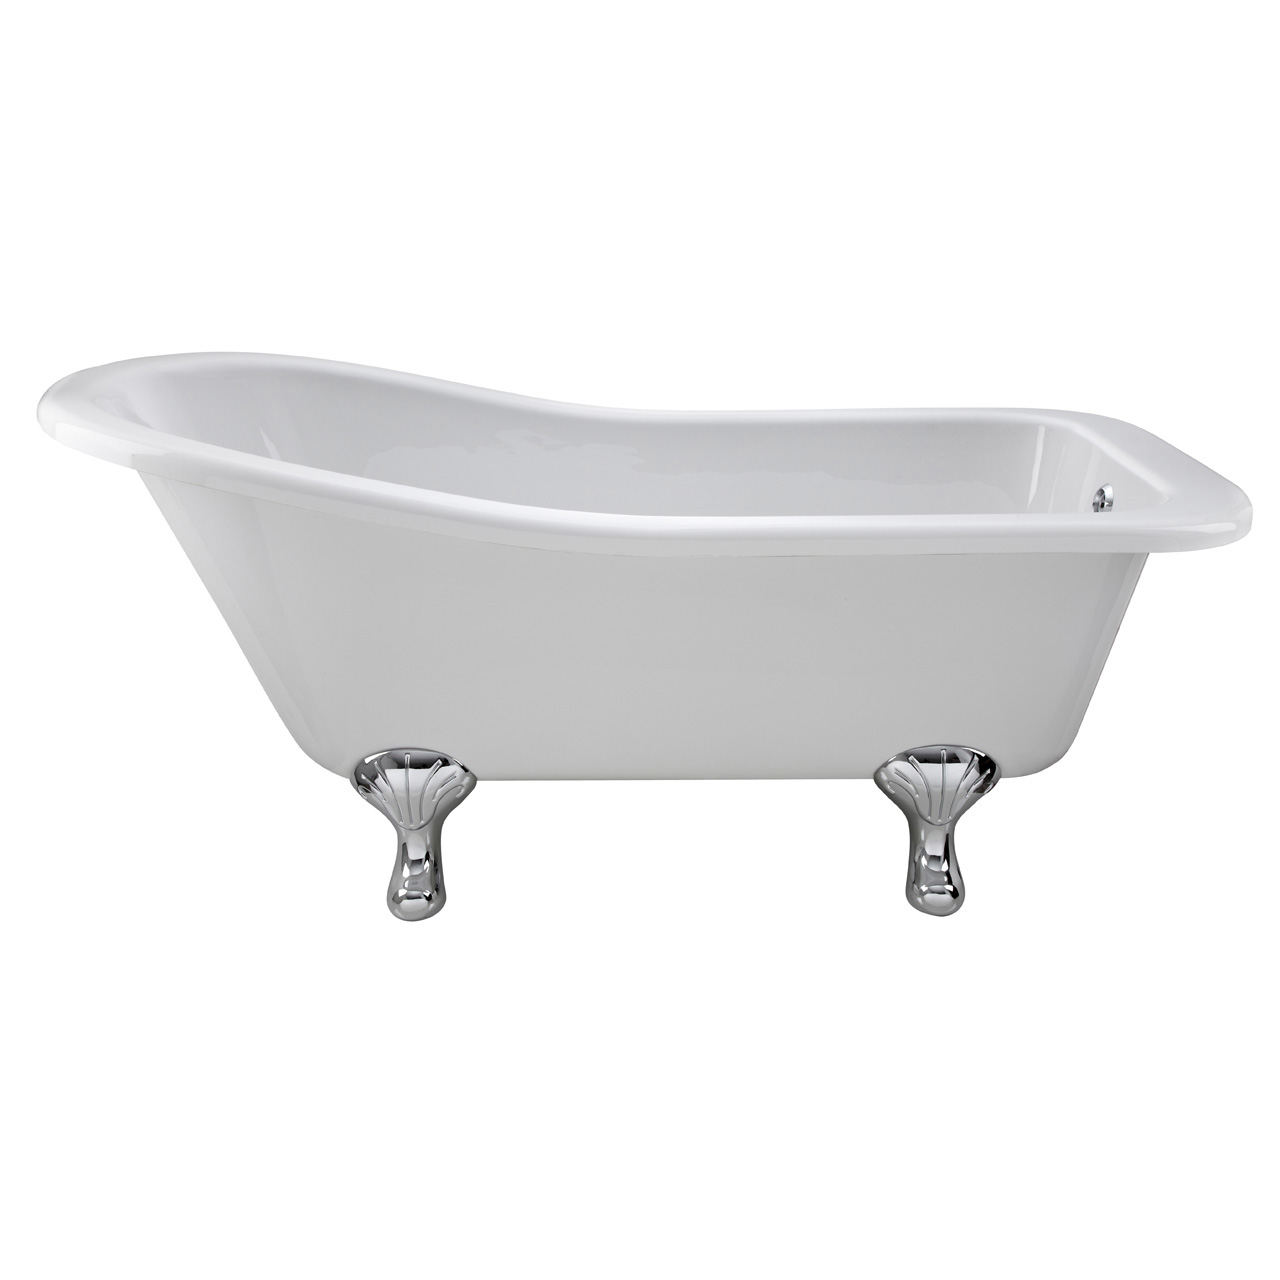 Nuie Brockley 1700mm Single Ended Freestanding Bath with Corbel Legs - RL1690T